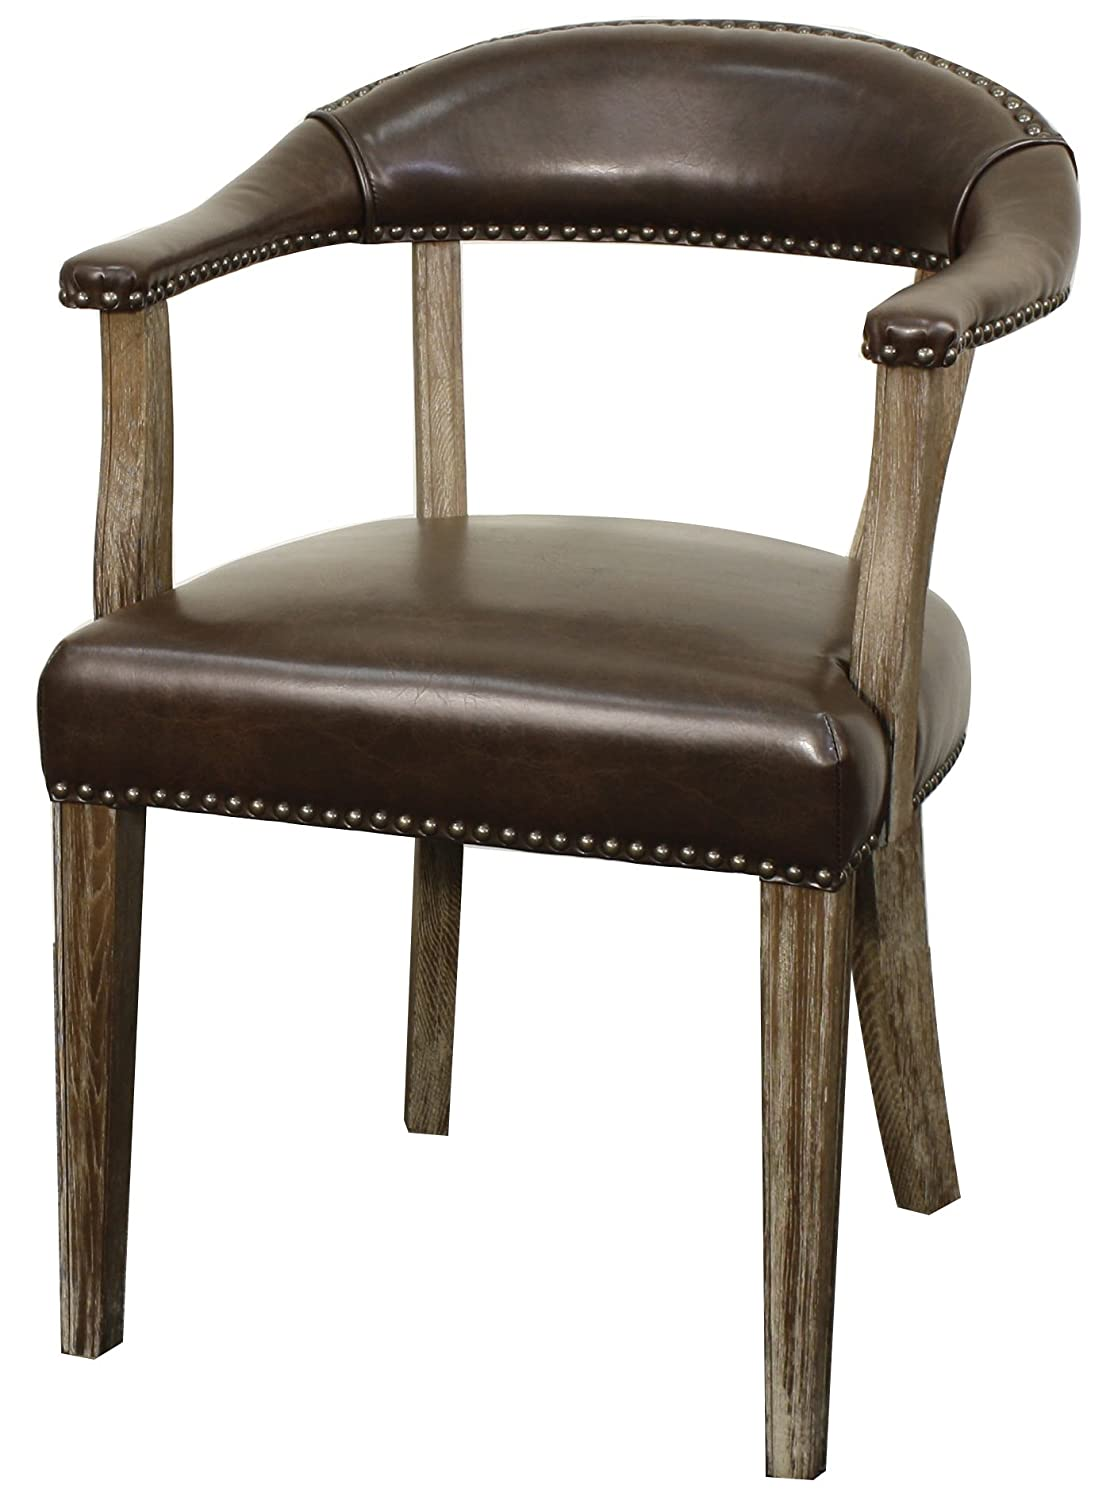 New Pacific Direct Bernadette Chair,Distressed Brown Legs,Rice Beige,Fully Assembled 398131-RI